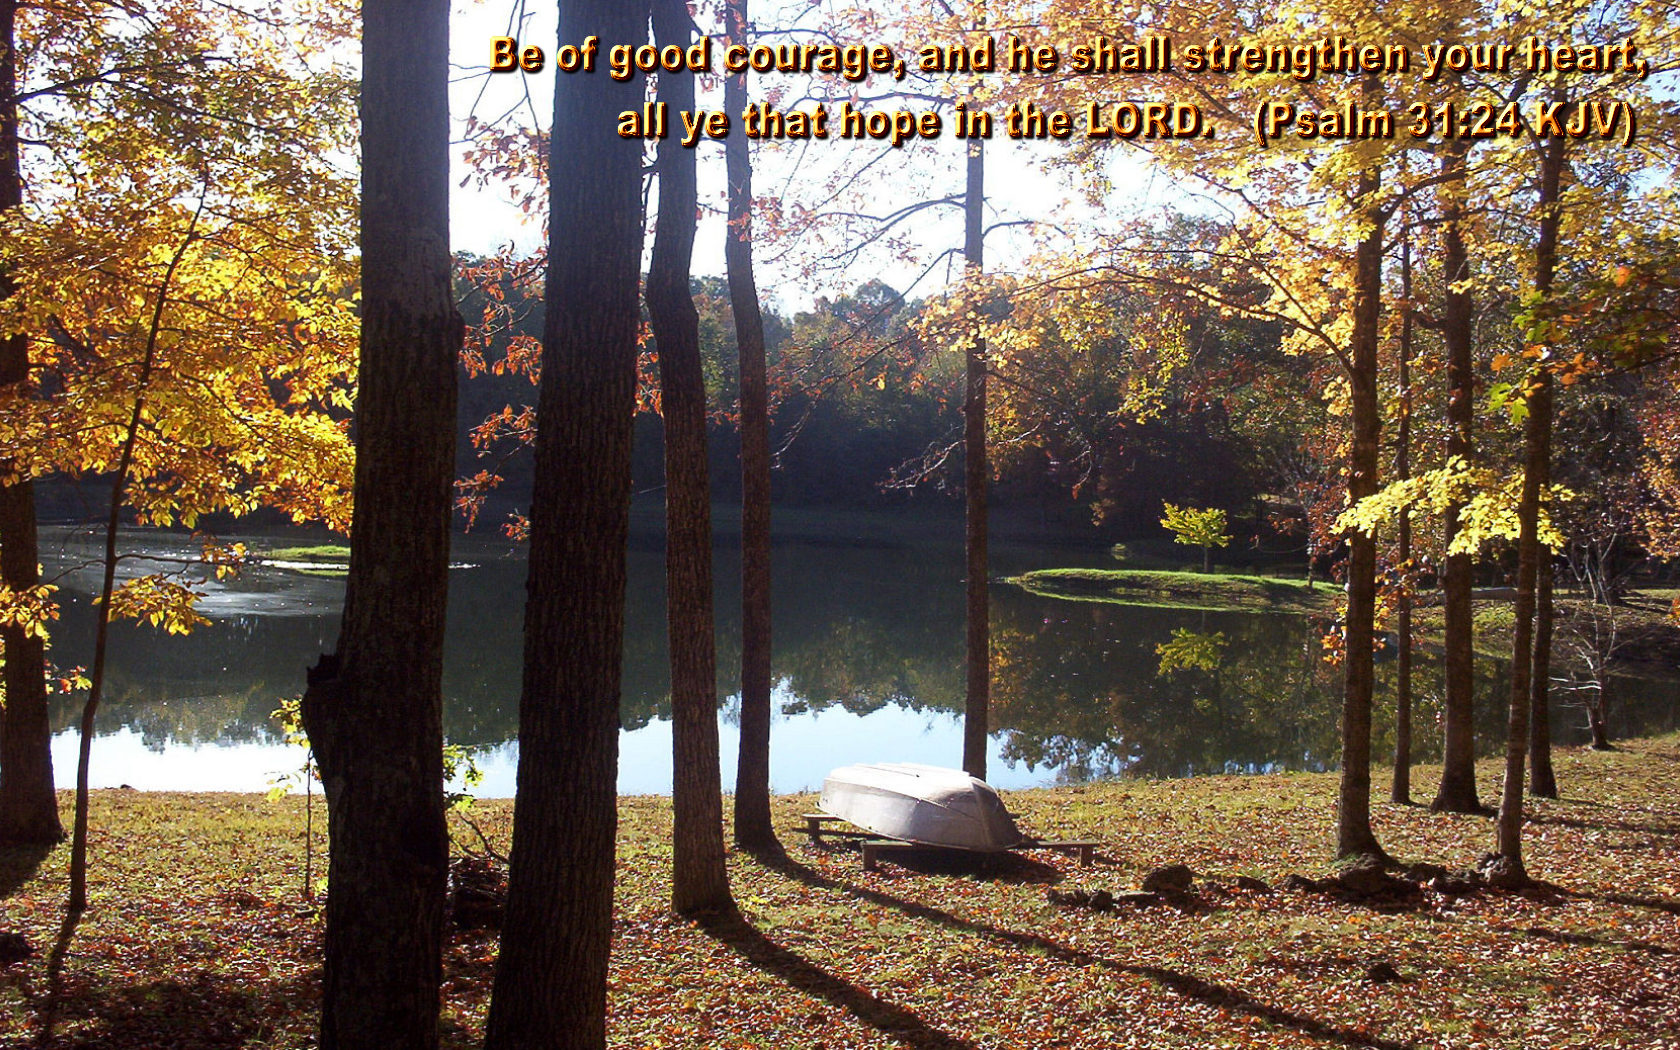 scenic wallpapers bible - photo #34